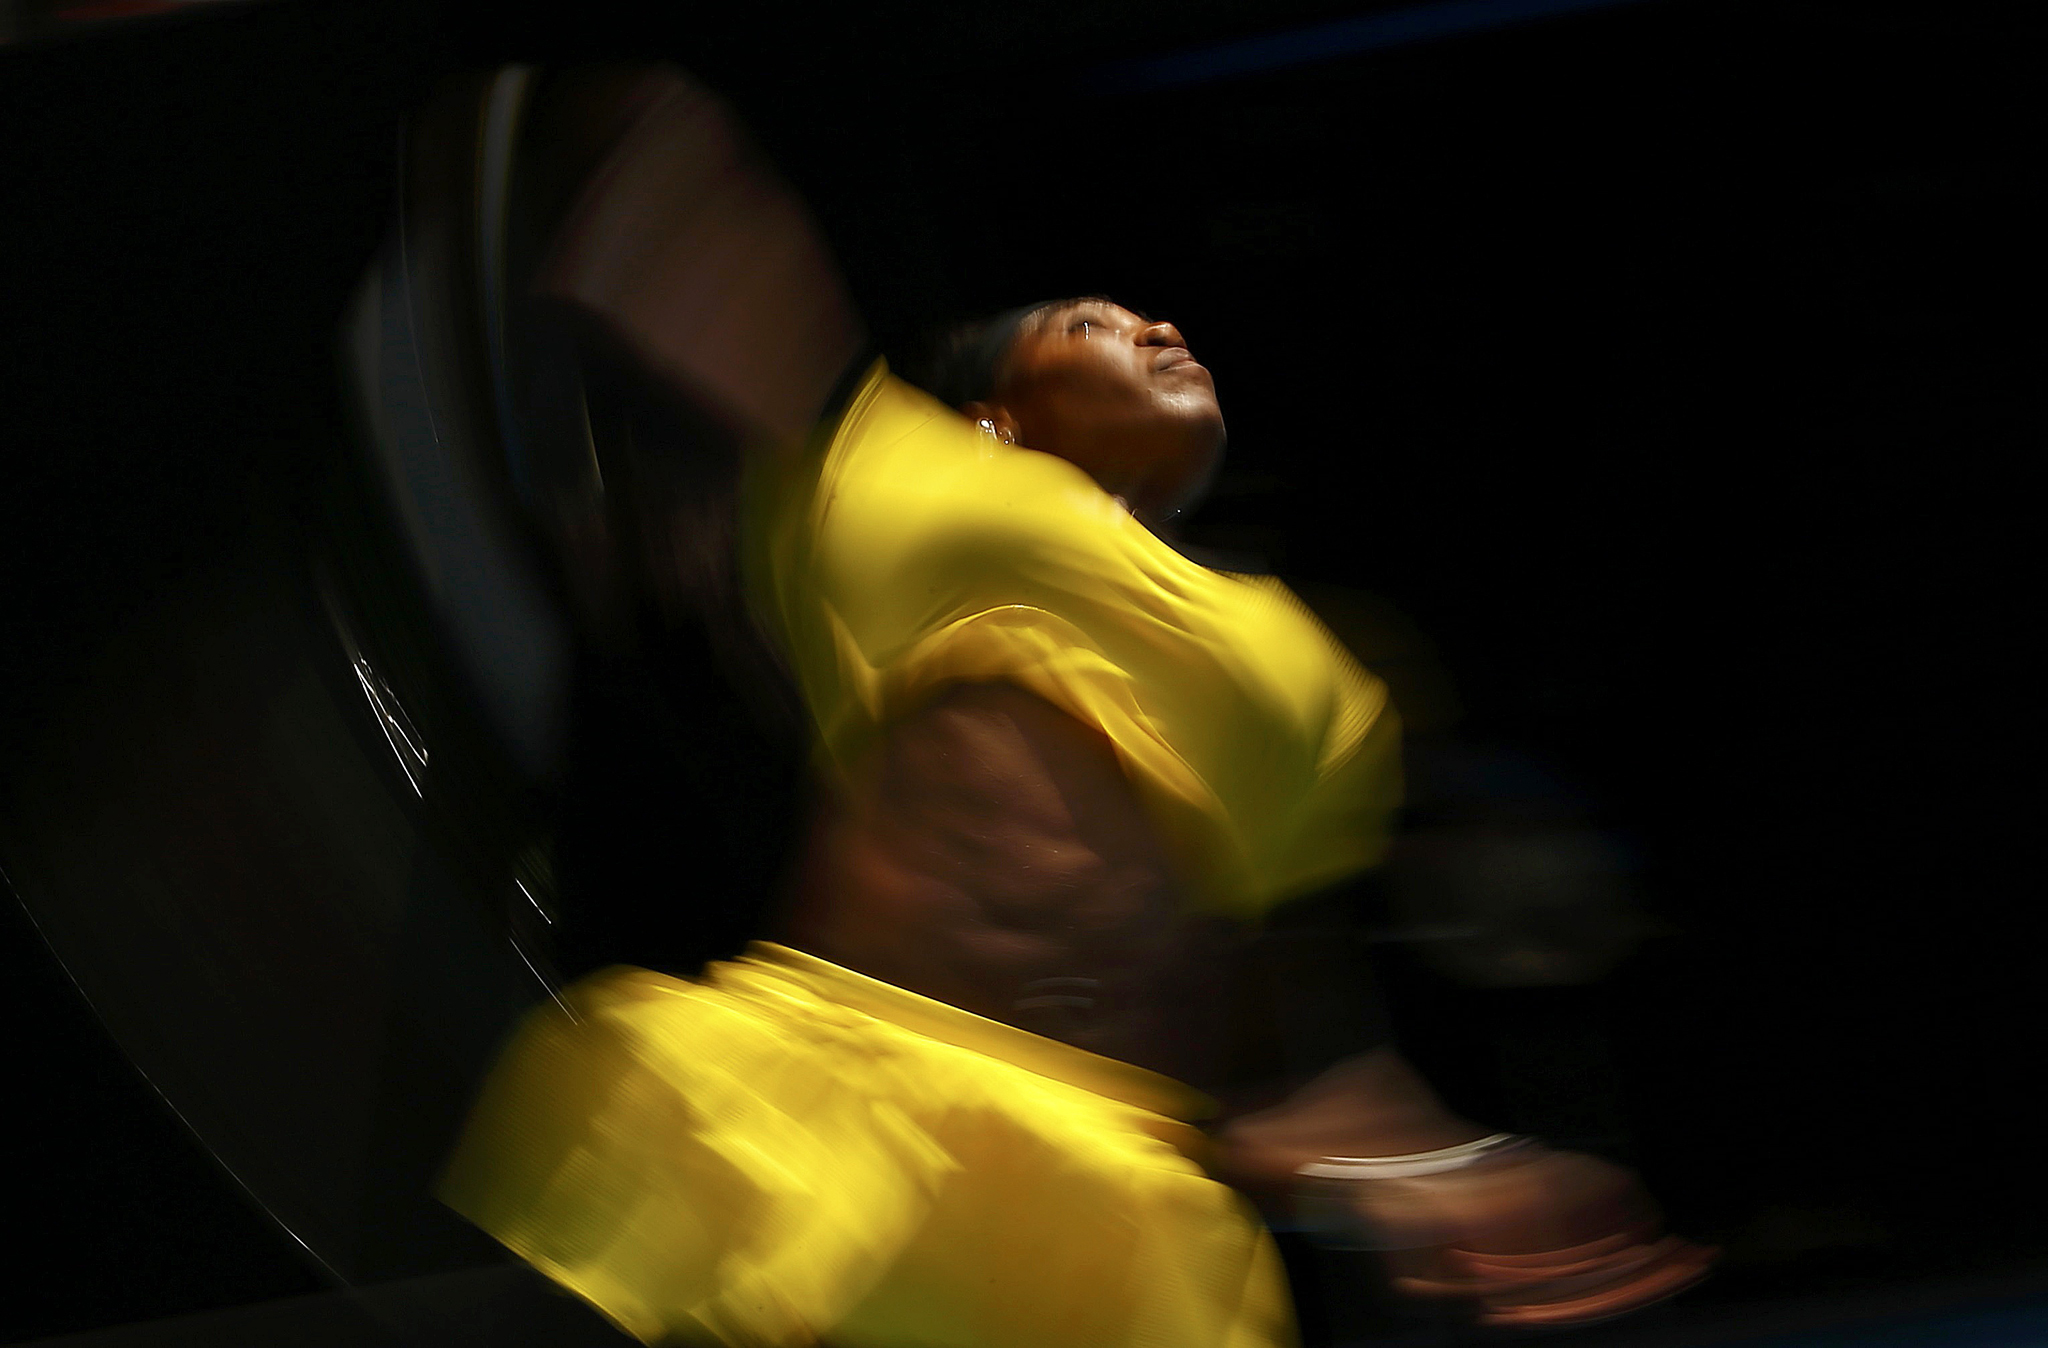 Williams of the U.S. serves during her quarter-final match against Russia's Sharapova at the Australian Open tennis tournament at Melbourne Park...Serena Williams of the U.S. serves during her quarter-final match against Russia's Maria Sharapova at the Australian Open tennis tournament at Melbourne Park, Australia, January 26, 2016. REUTERS/Thomas Peter       TPX IMAGES OF THE DAY